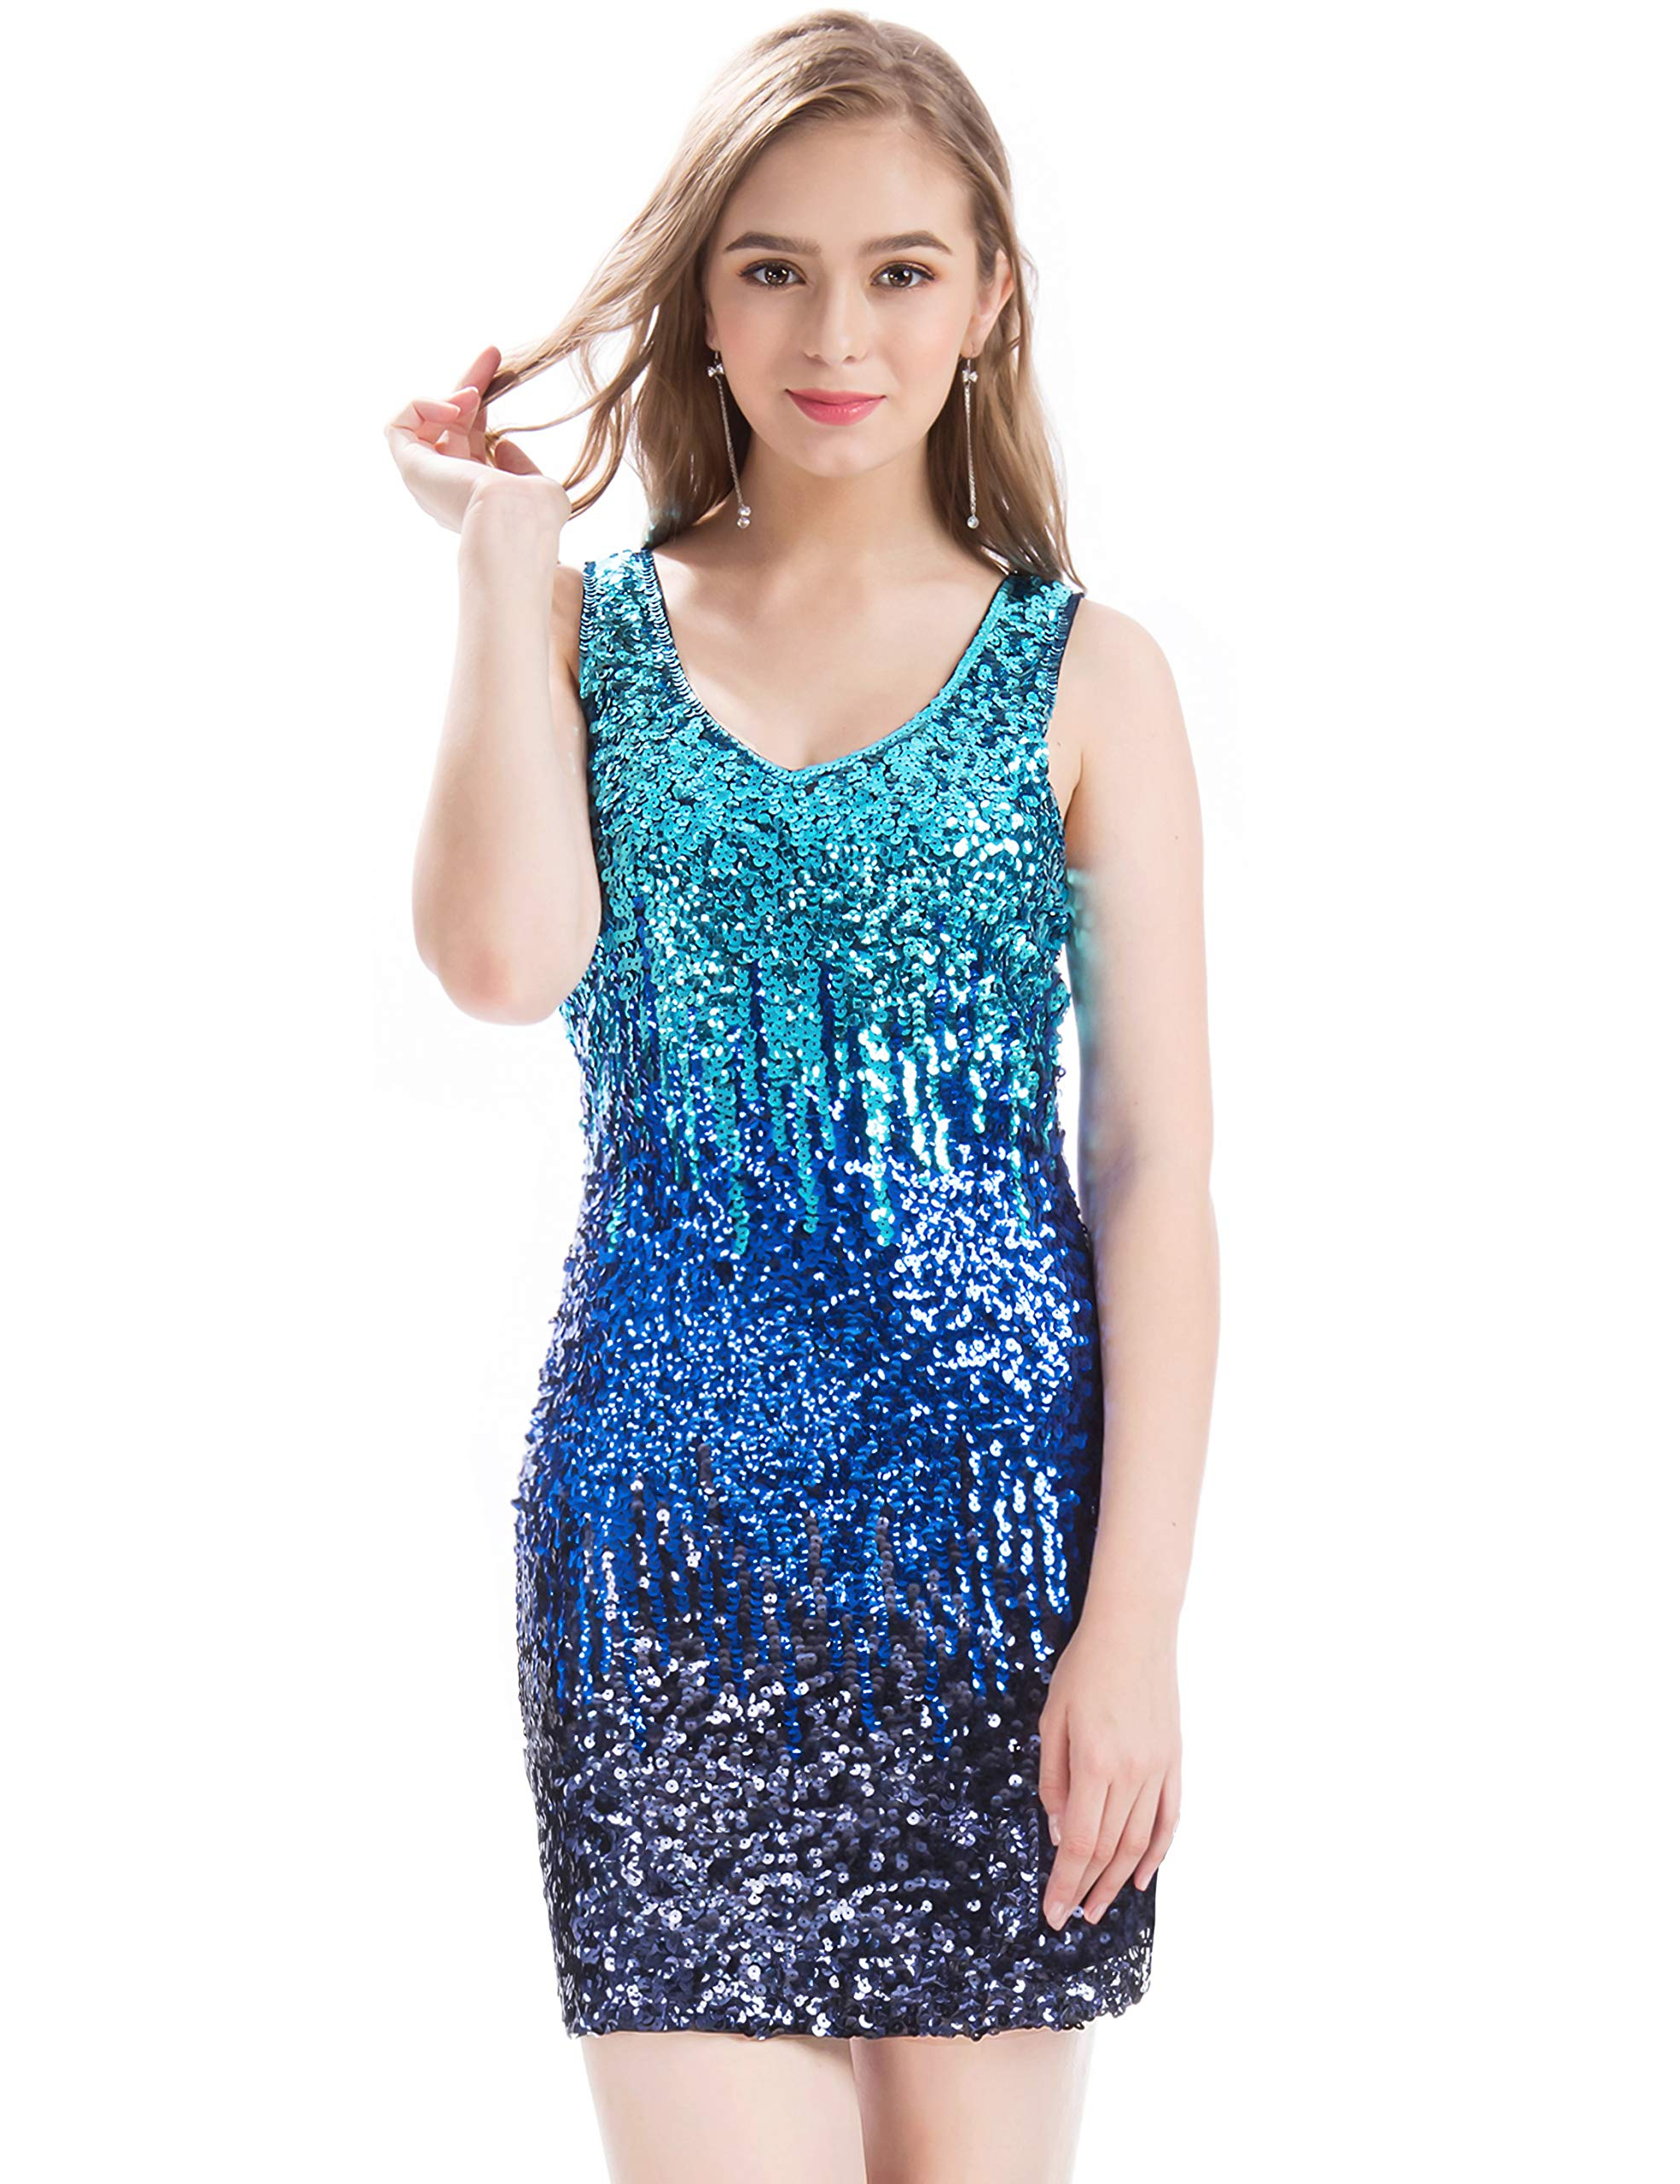 Available at Amazon: MANER Women's Sexy V Neck Sequin Glitter Bodycon Stretchy Club Mini Party Dress